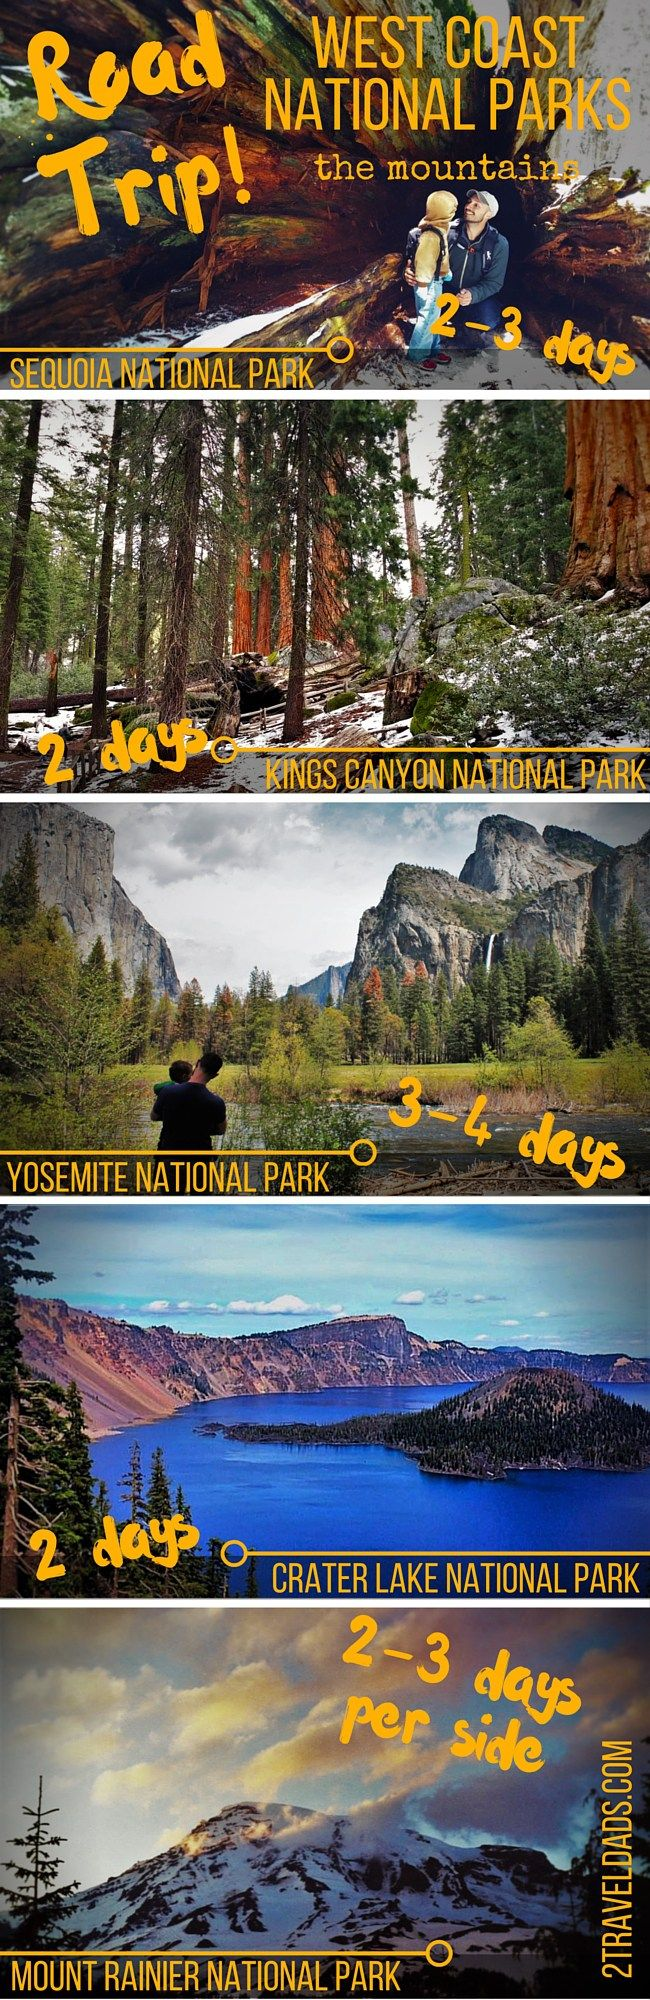 Fall is the perfect time to plan for next summer's vacation!  Ideal plan for a West Coast National Park road trip, visiting the various mountain National Parks! 2traveldads.com